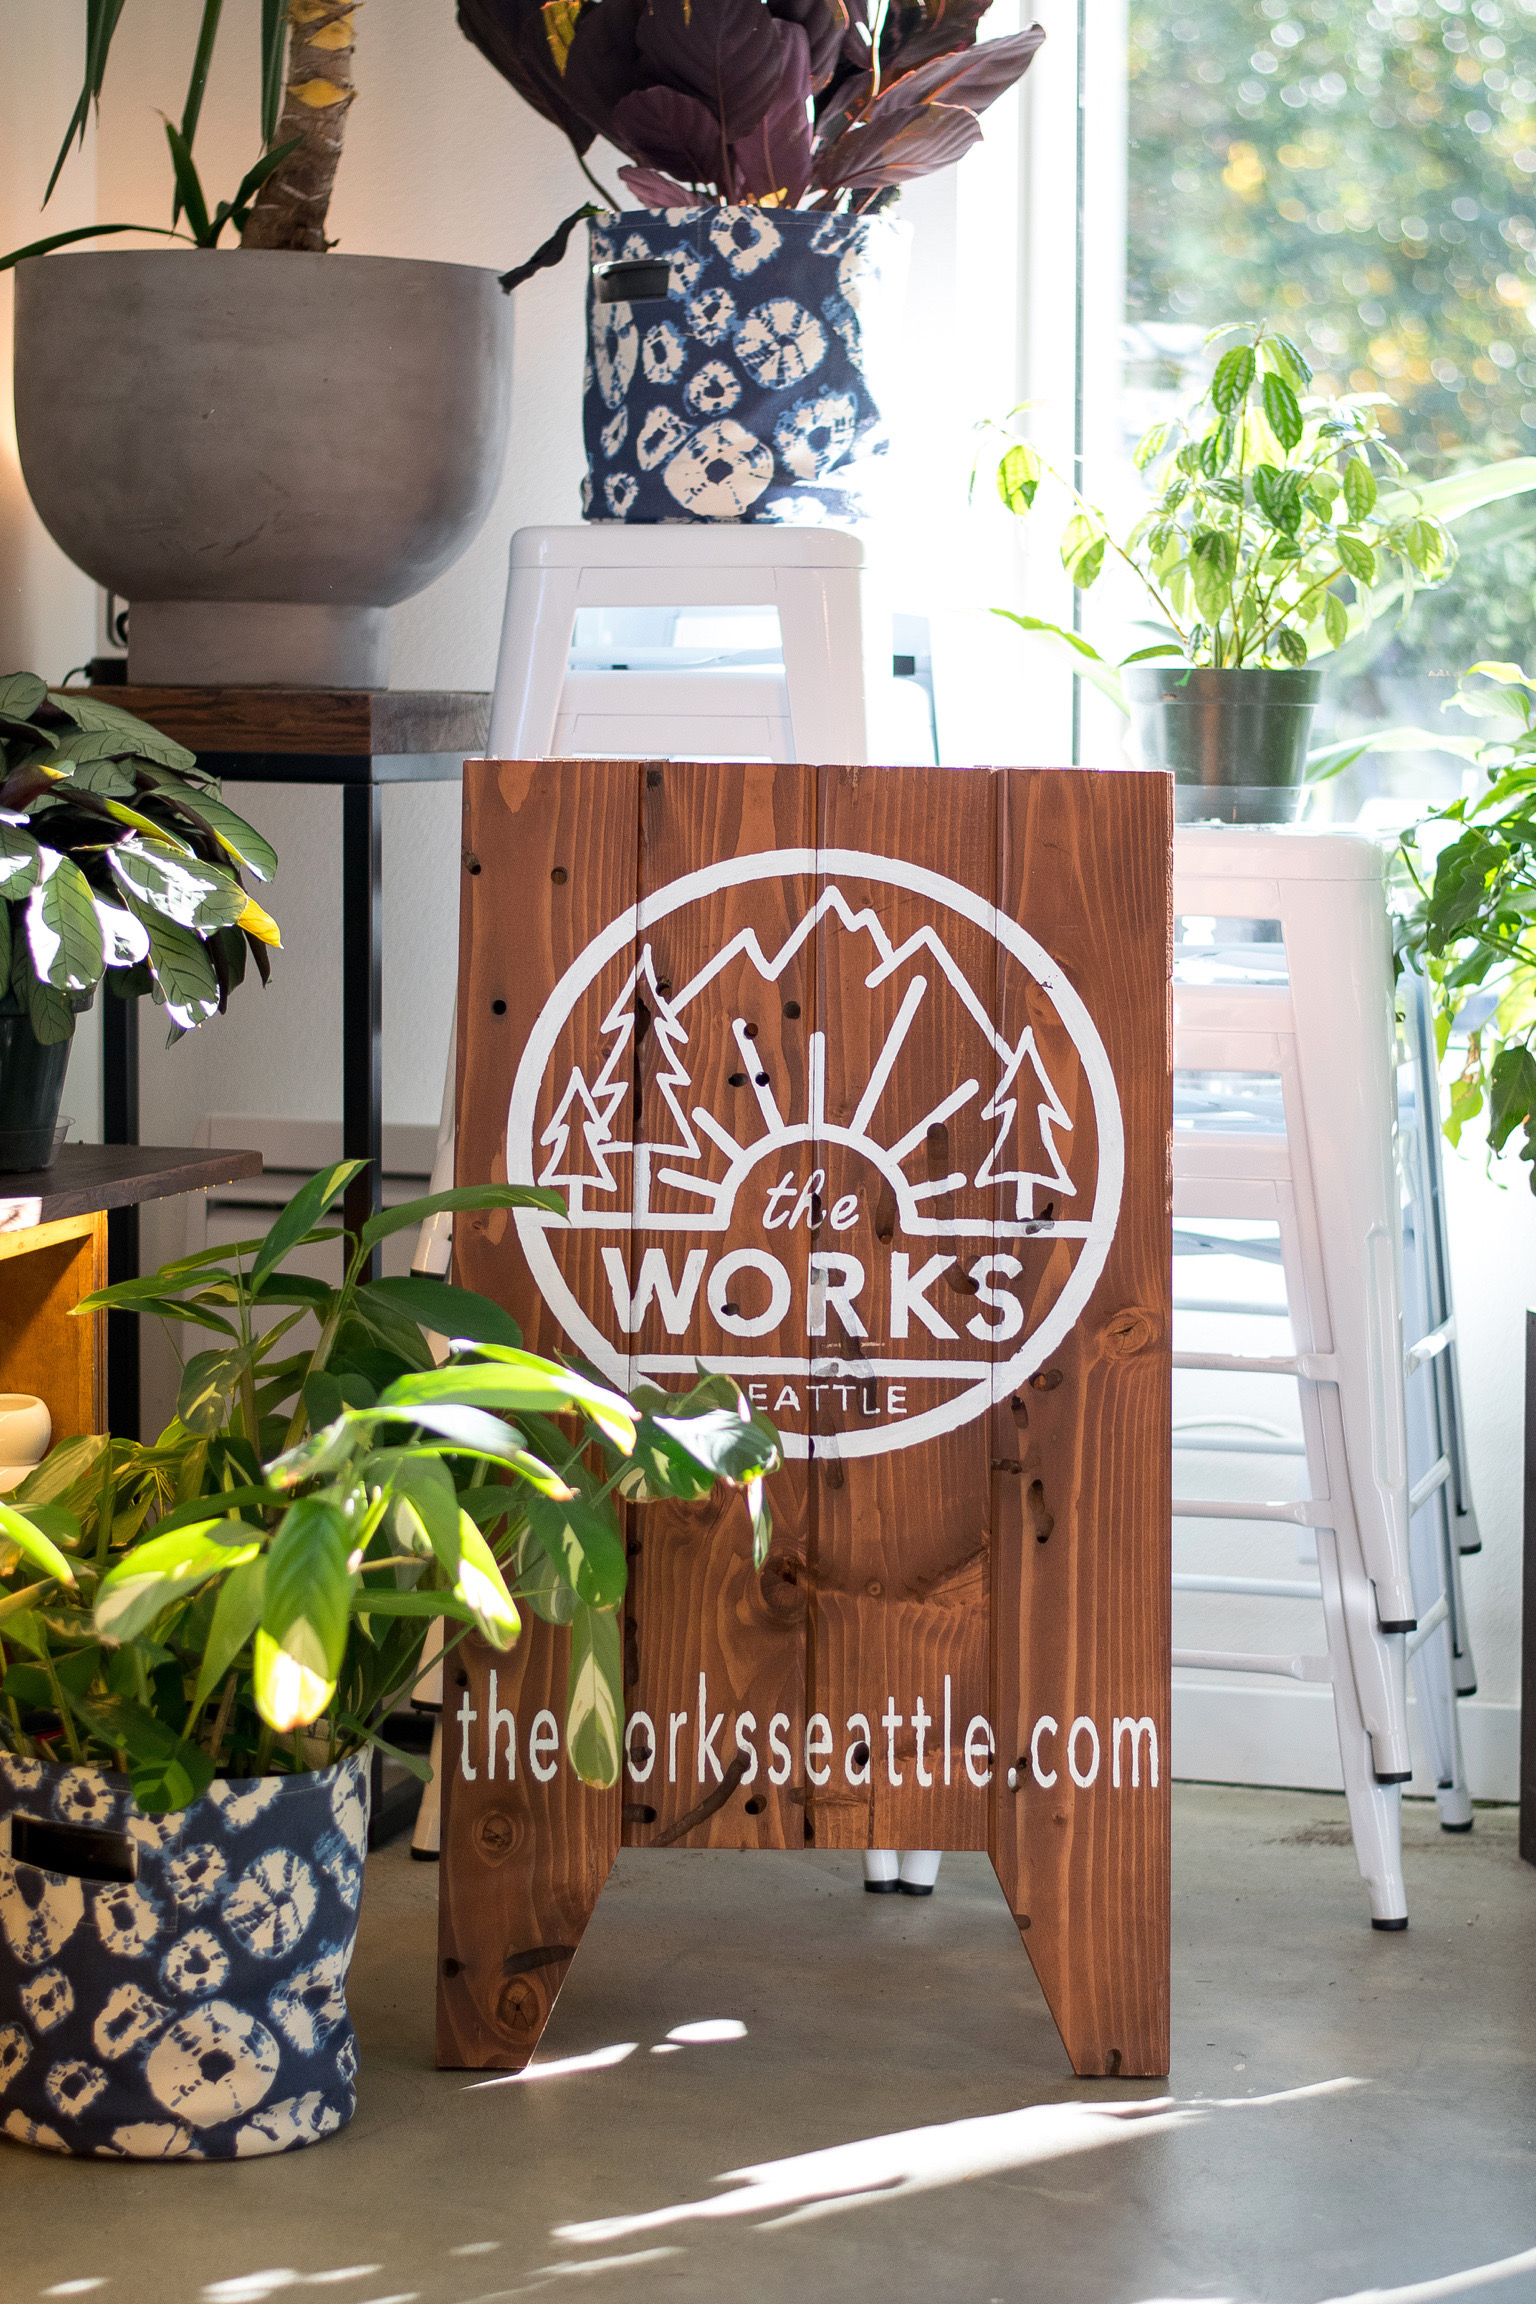 Find conversation, community and connection at The Works Seattle.